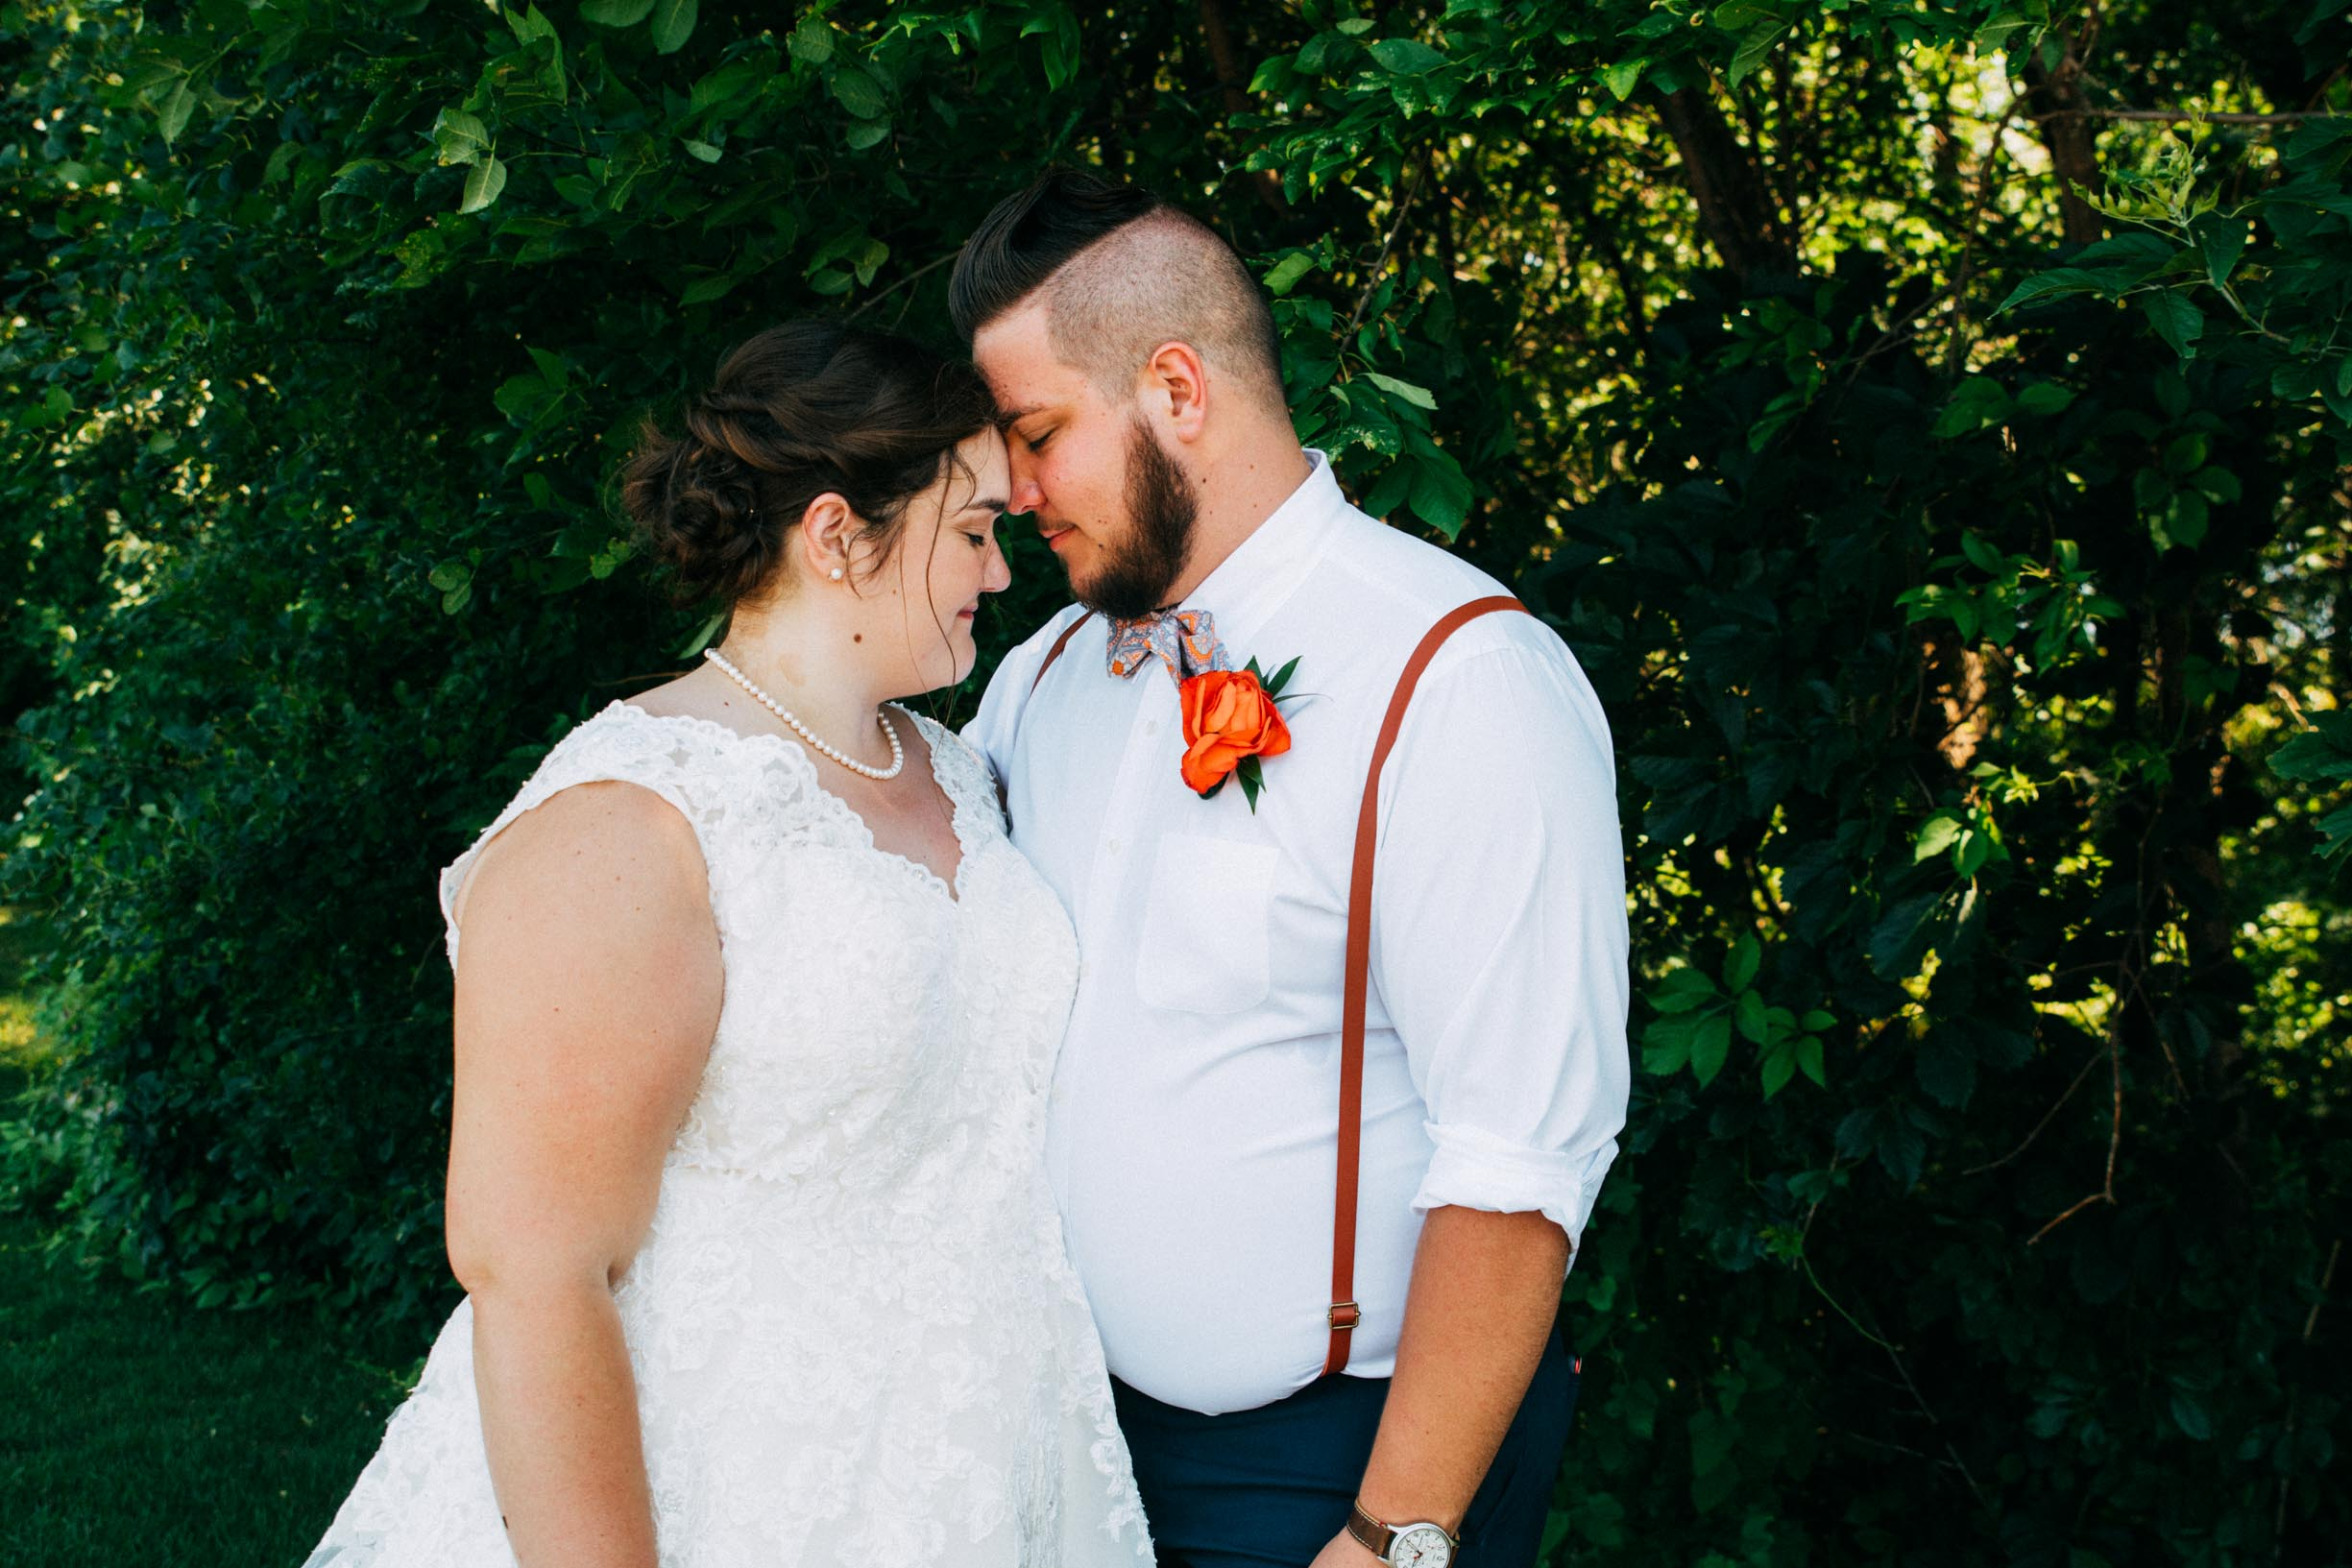 Beth & Sam - Trevor and Elisebeth don't just take pictures, they tell stories. You will not be disappointed by their professionalism, quality work, flexibility, and sheer joy for what they are doing. They adore a good love story and will tell yours incredibly!